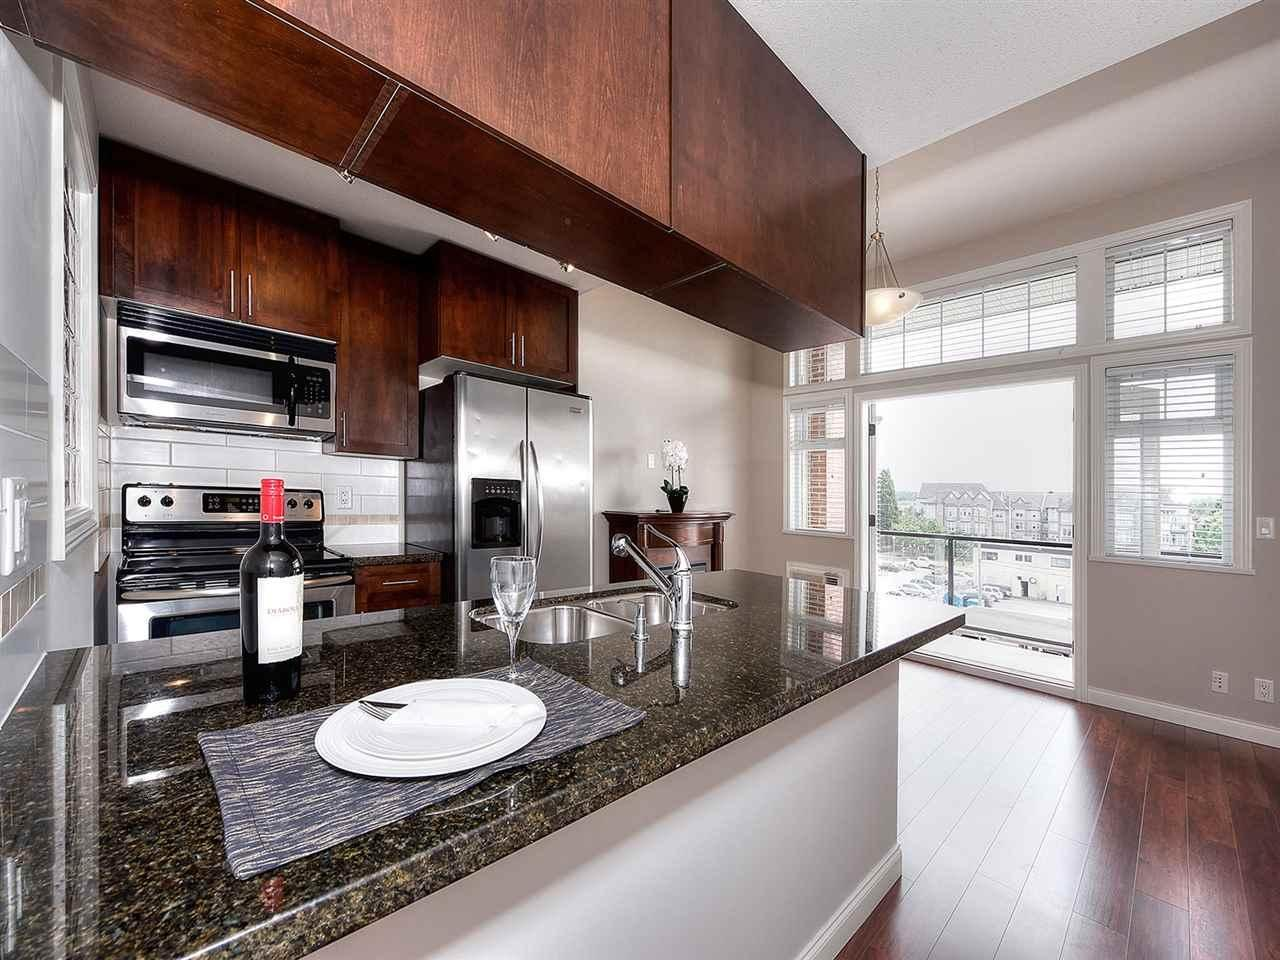 R2070174 - 410 5650 201A STREET, Langley City, Langley, BC - Apartment Unit